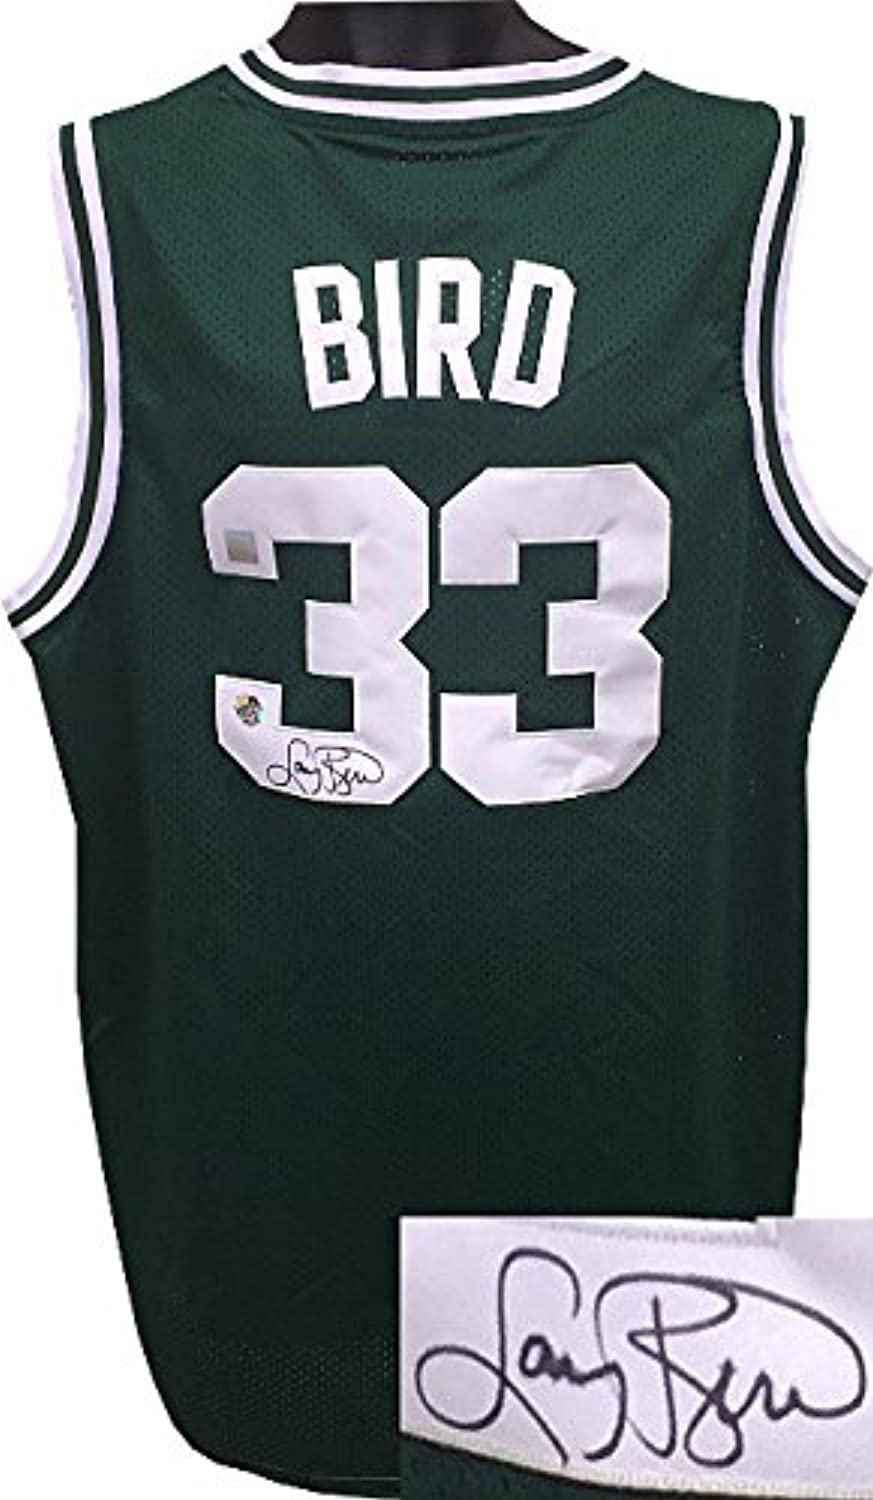 Larry Bird signed Boston Celtics Green Adidas TB Hardwood Classics Jersey XL +2 length Bird SSG Holograms